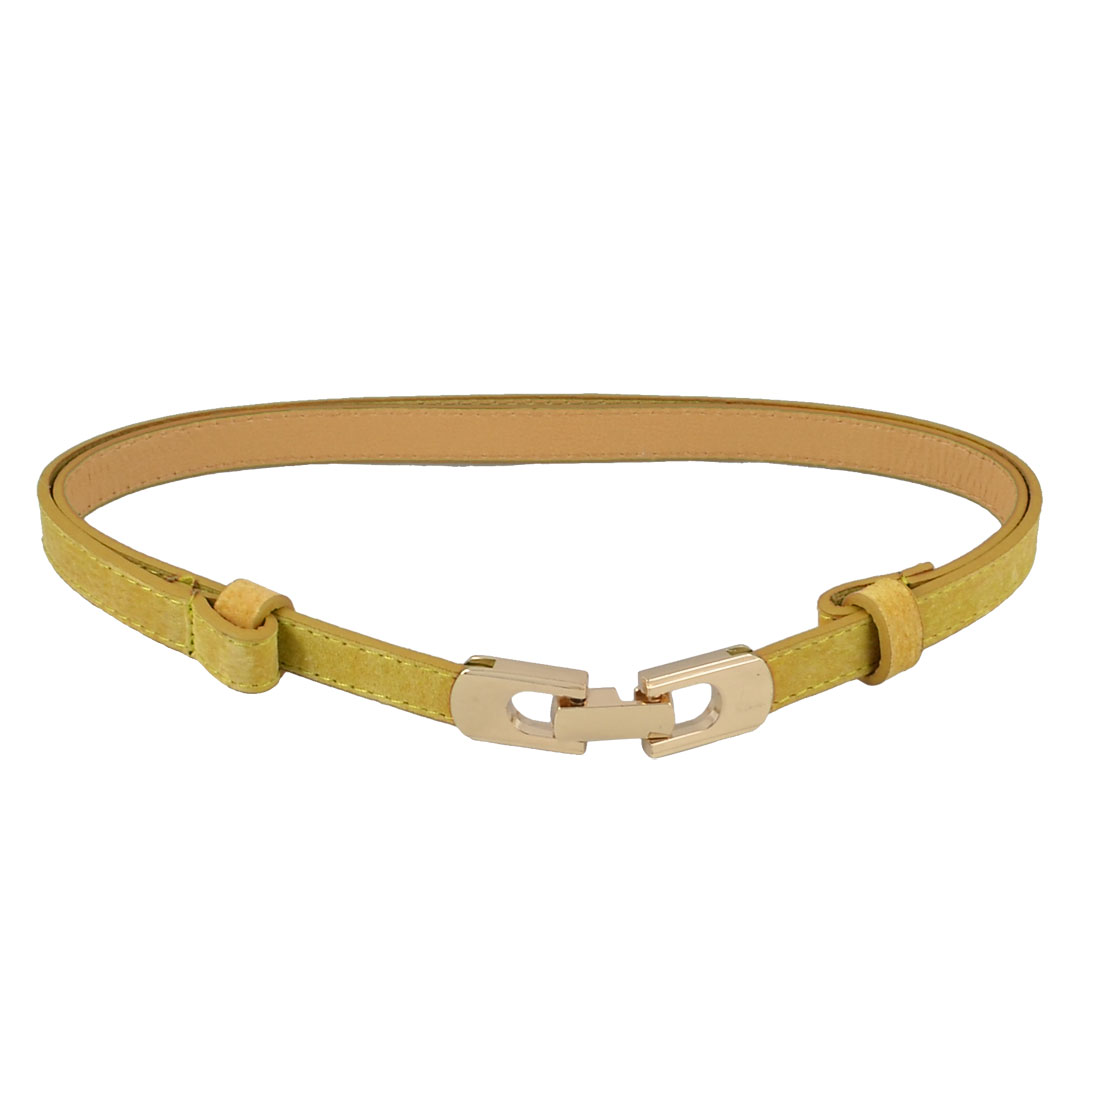 "Yellow Gold Tone Interlocking Buckle Adjustable Waist Belt 0.6"" Width for Lady"